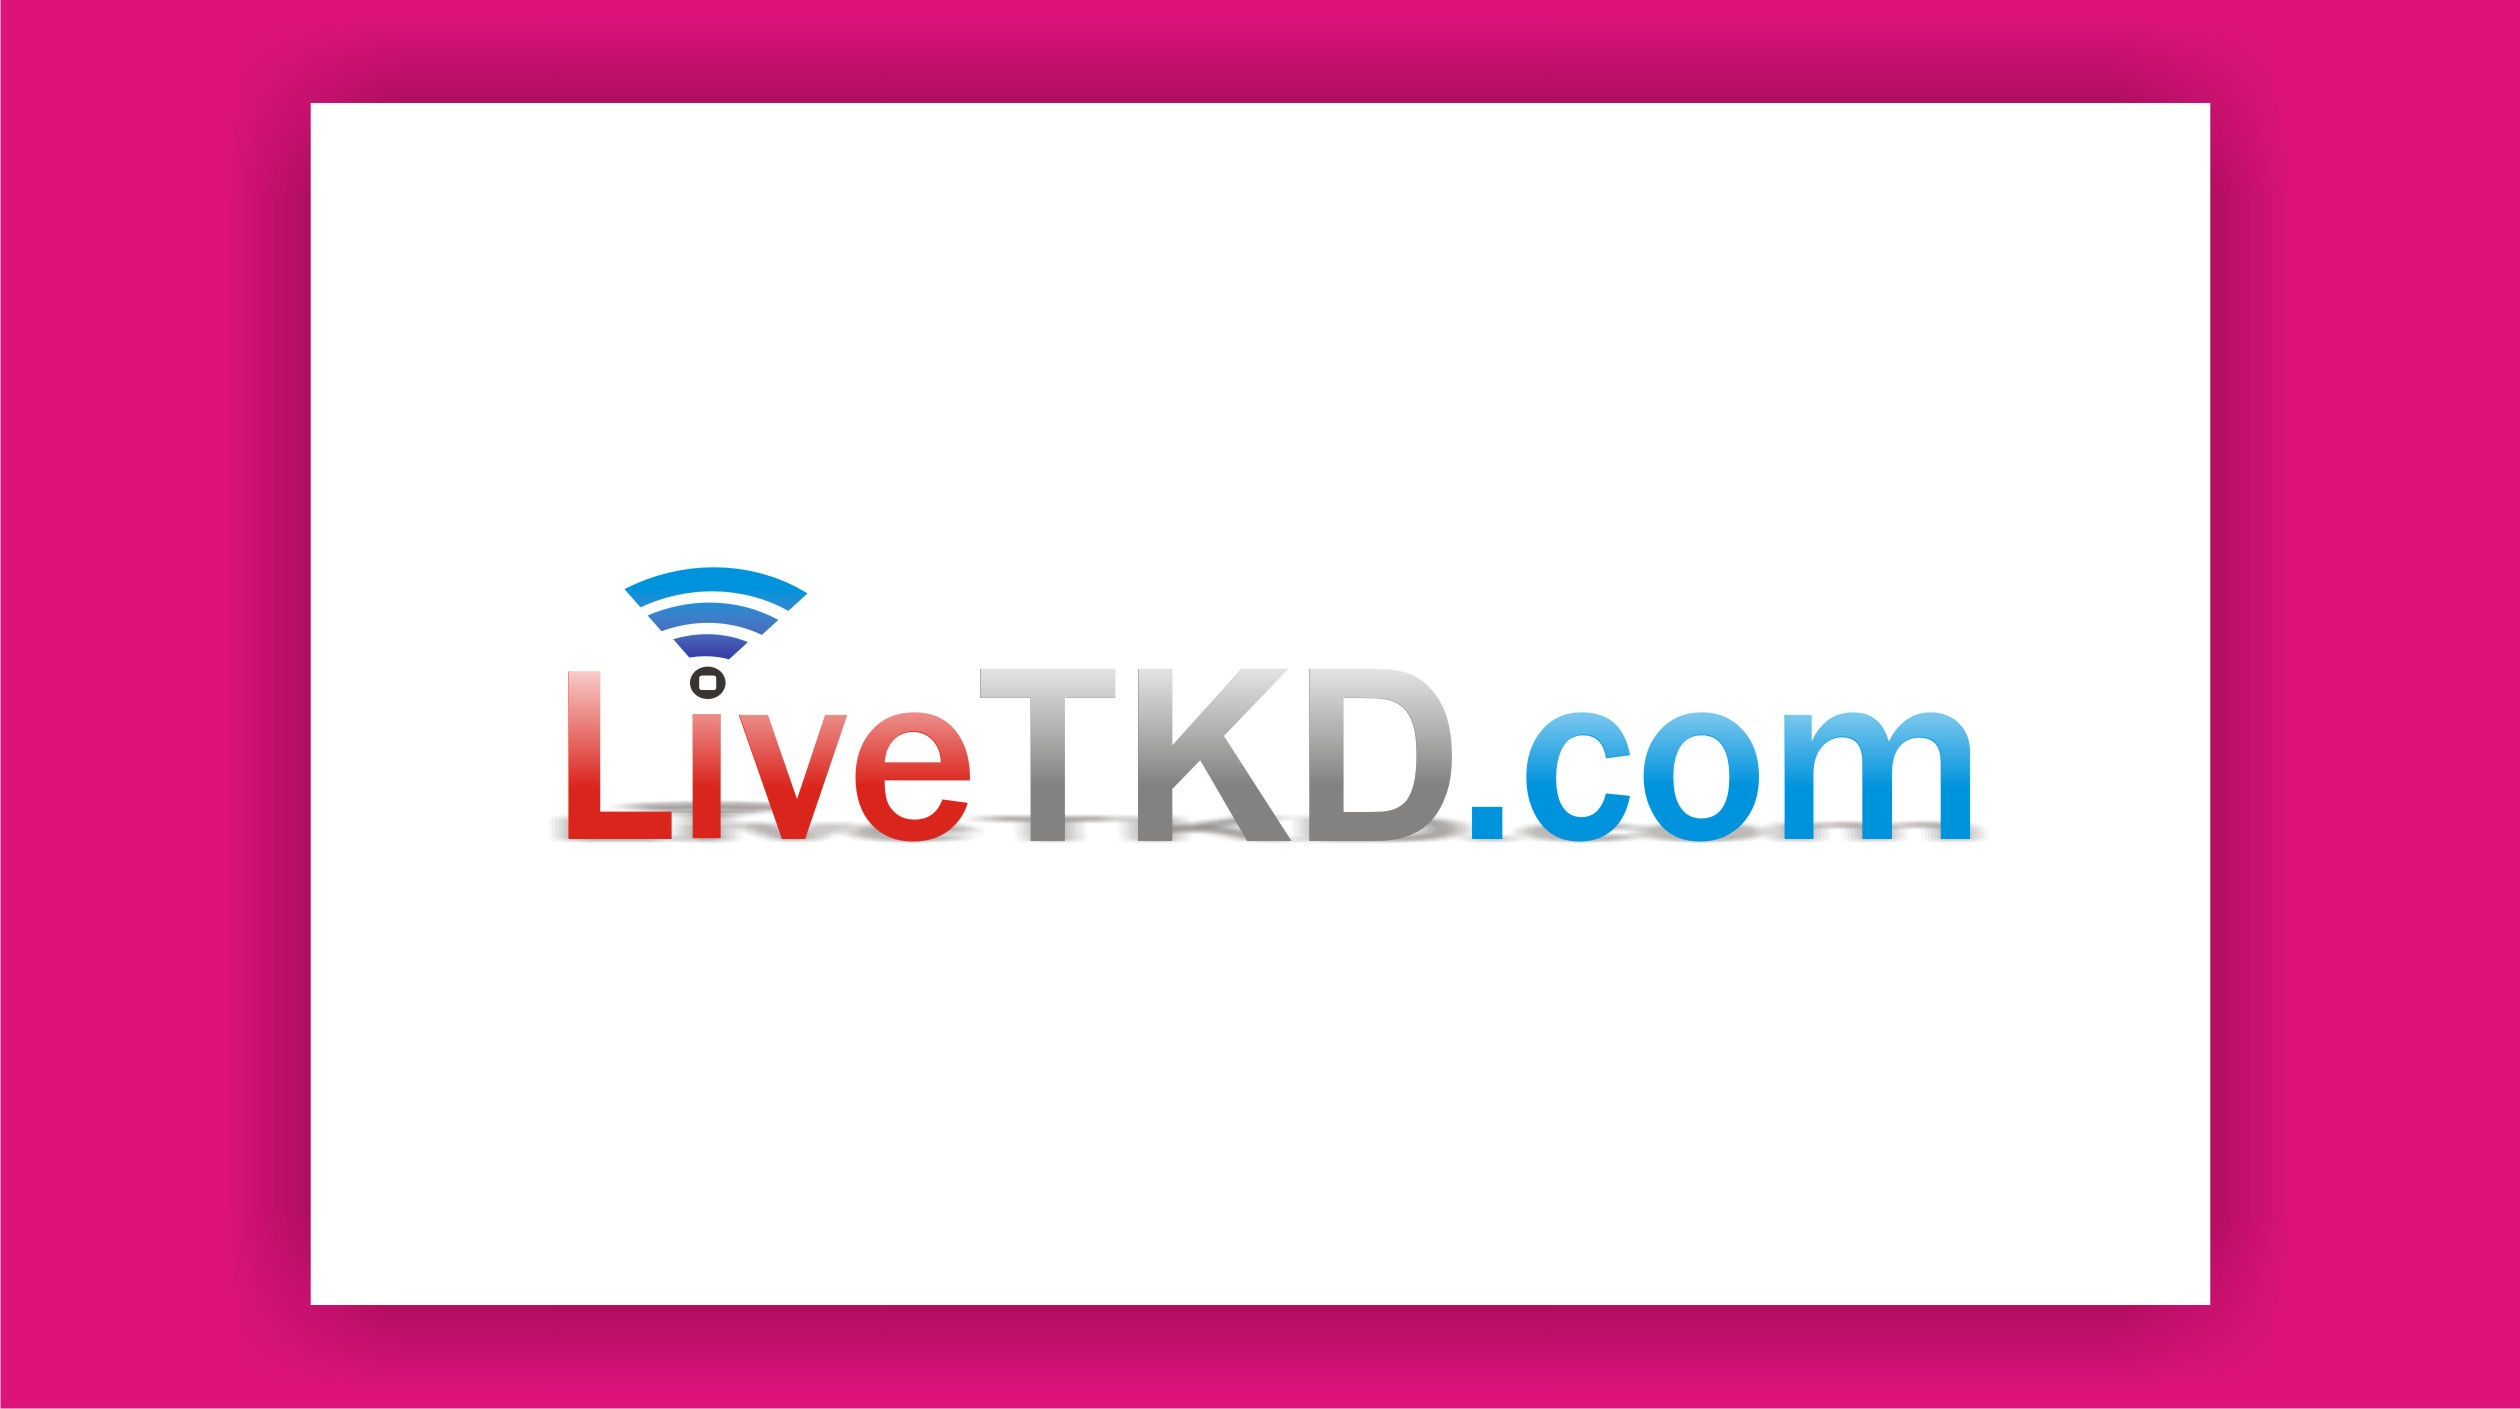 Logo Design by Shailender Kumar - Entry No. 145 in the Logo Design Contest New Logo Design for LiveTKD.com.